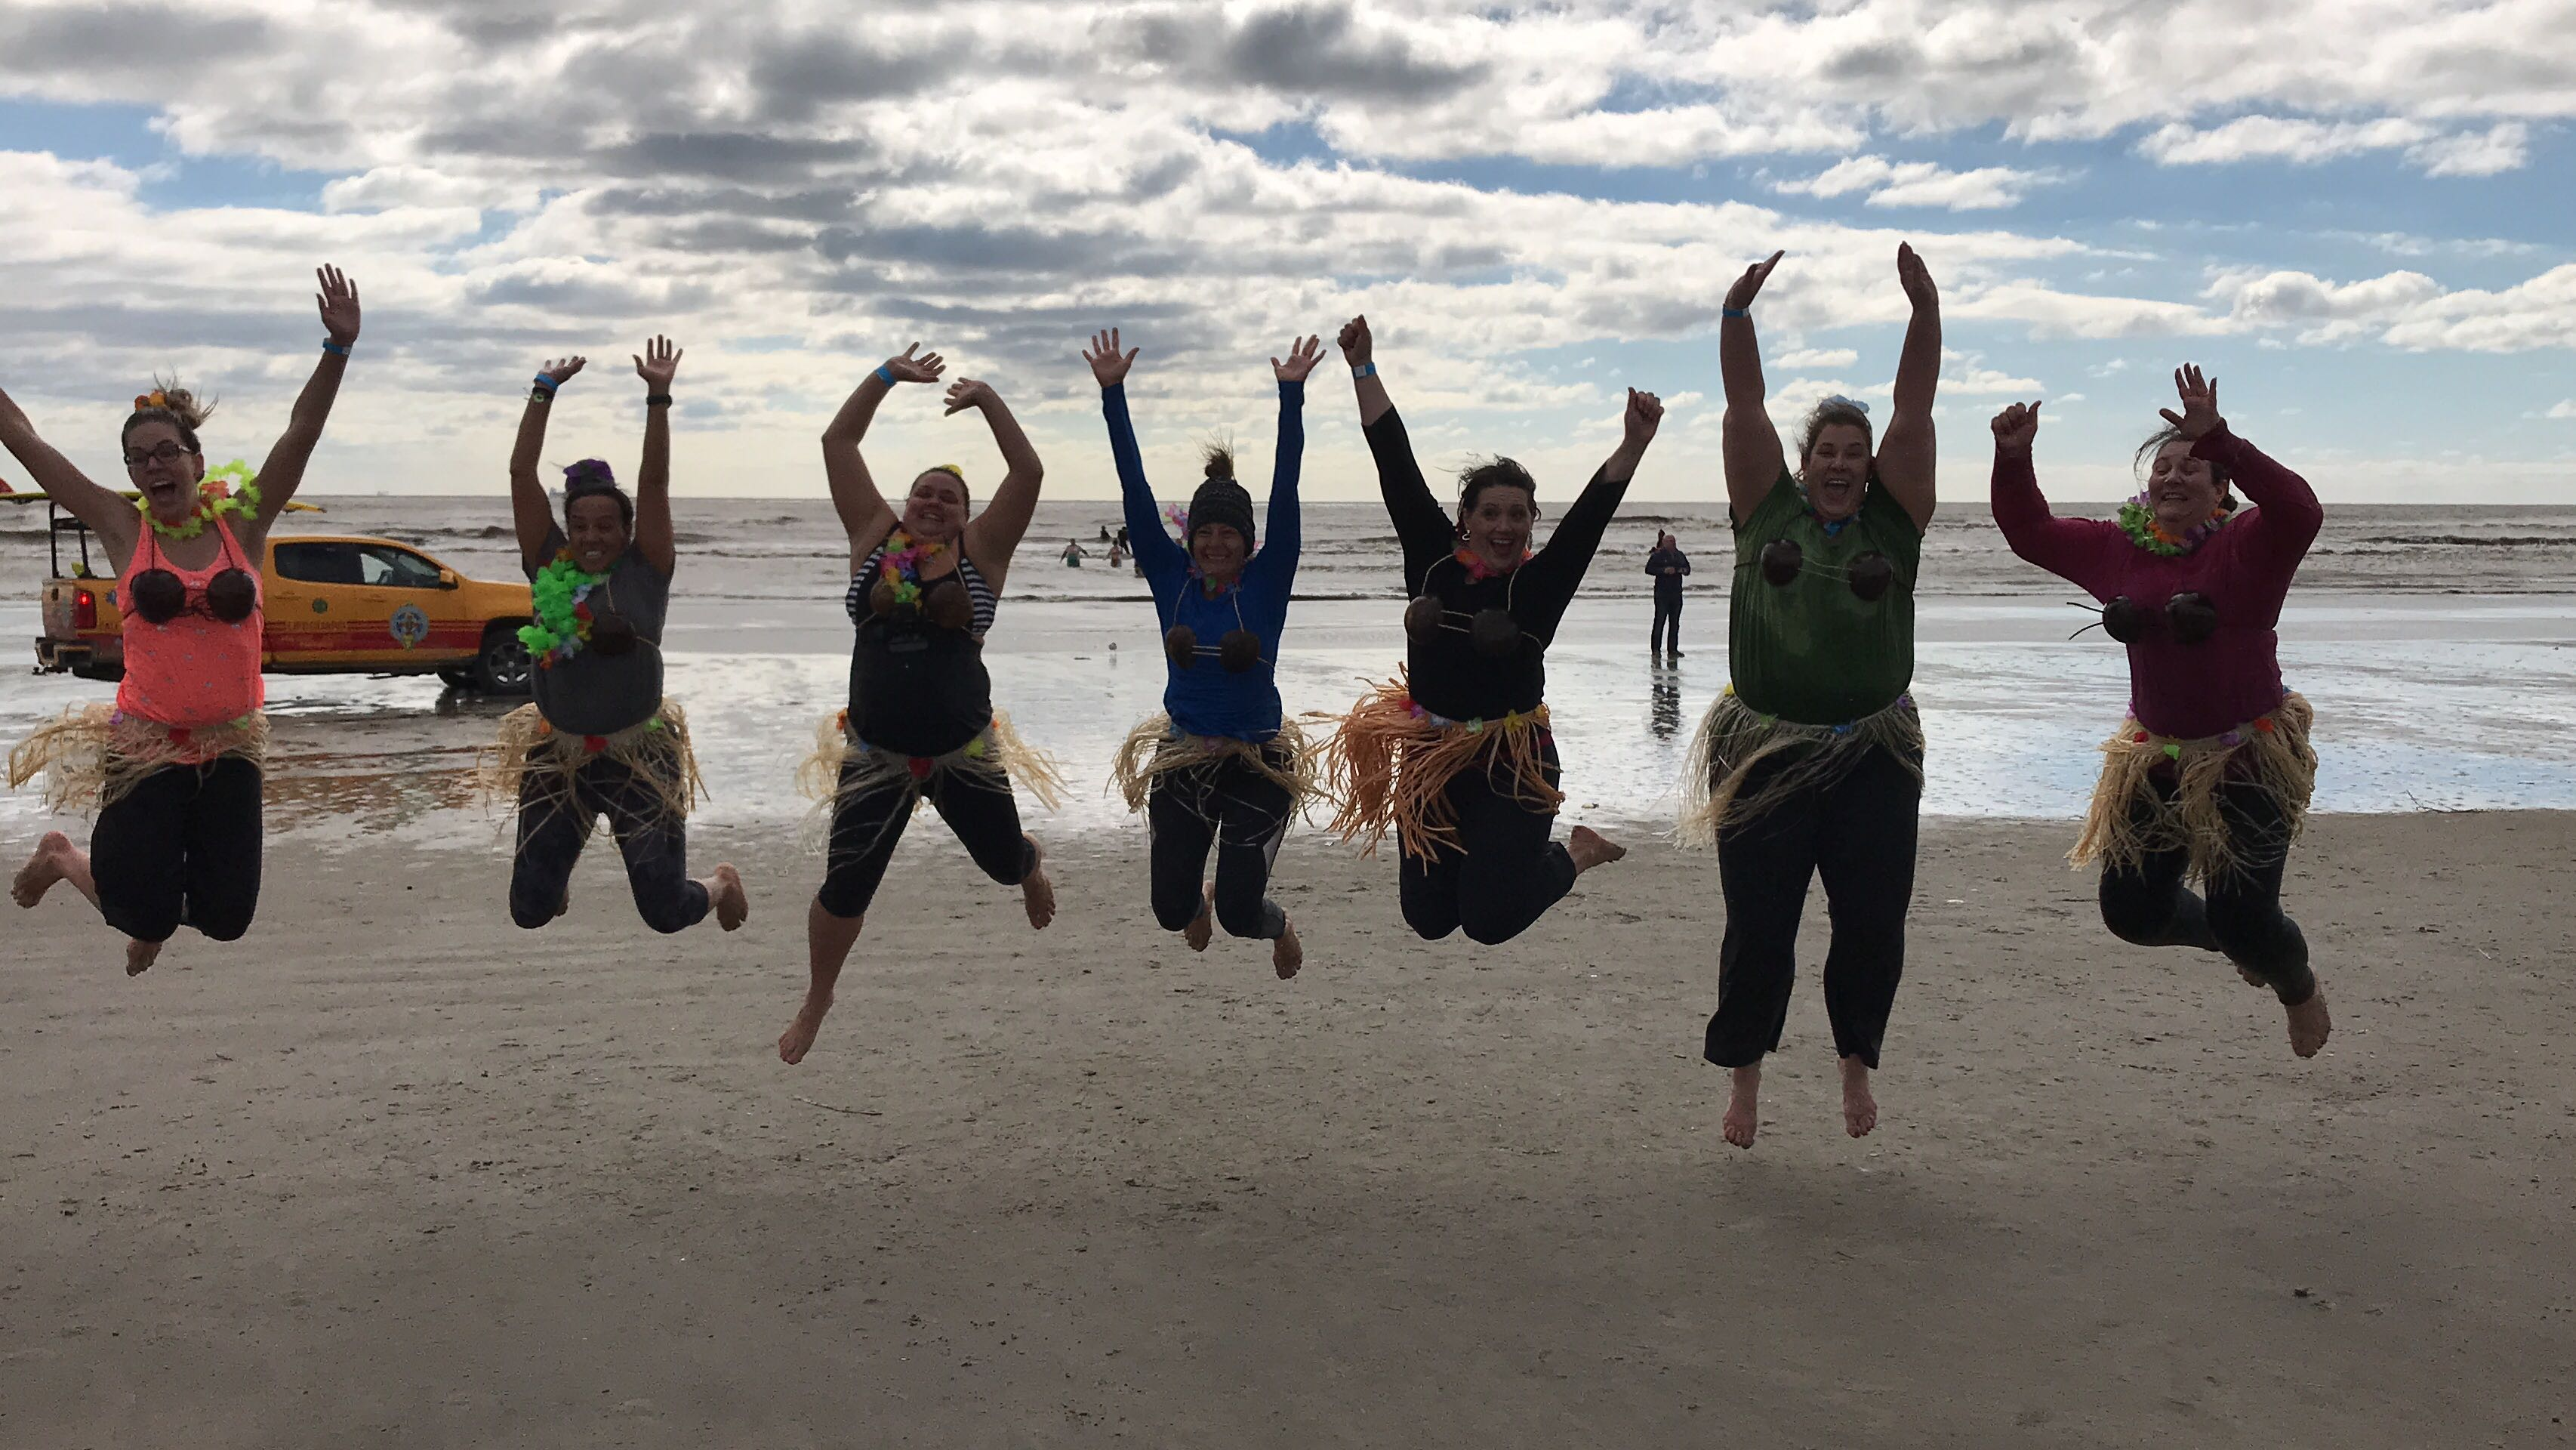 <div class='meta'><div class='origin-logo' data-origin='none'></div><span class='caption-text' data-credit=''>More than 300 participants turned out for the 8th annual Polar Plunge at Stewart Beach in Galveston on Saturday, January 19, 2019.</span></div>